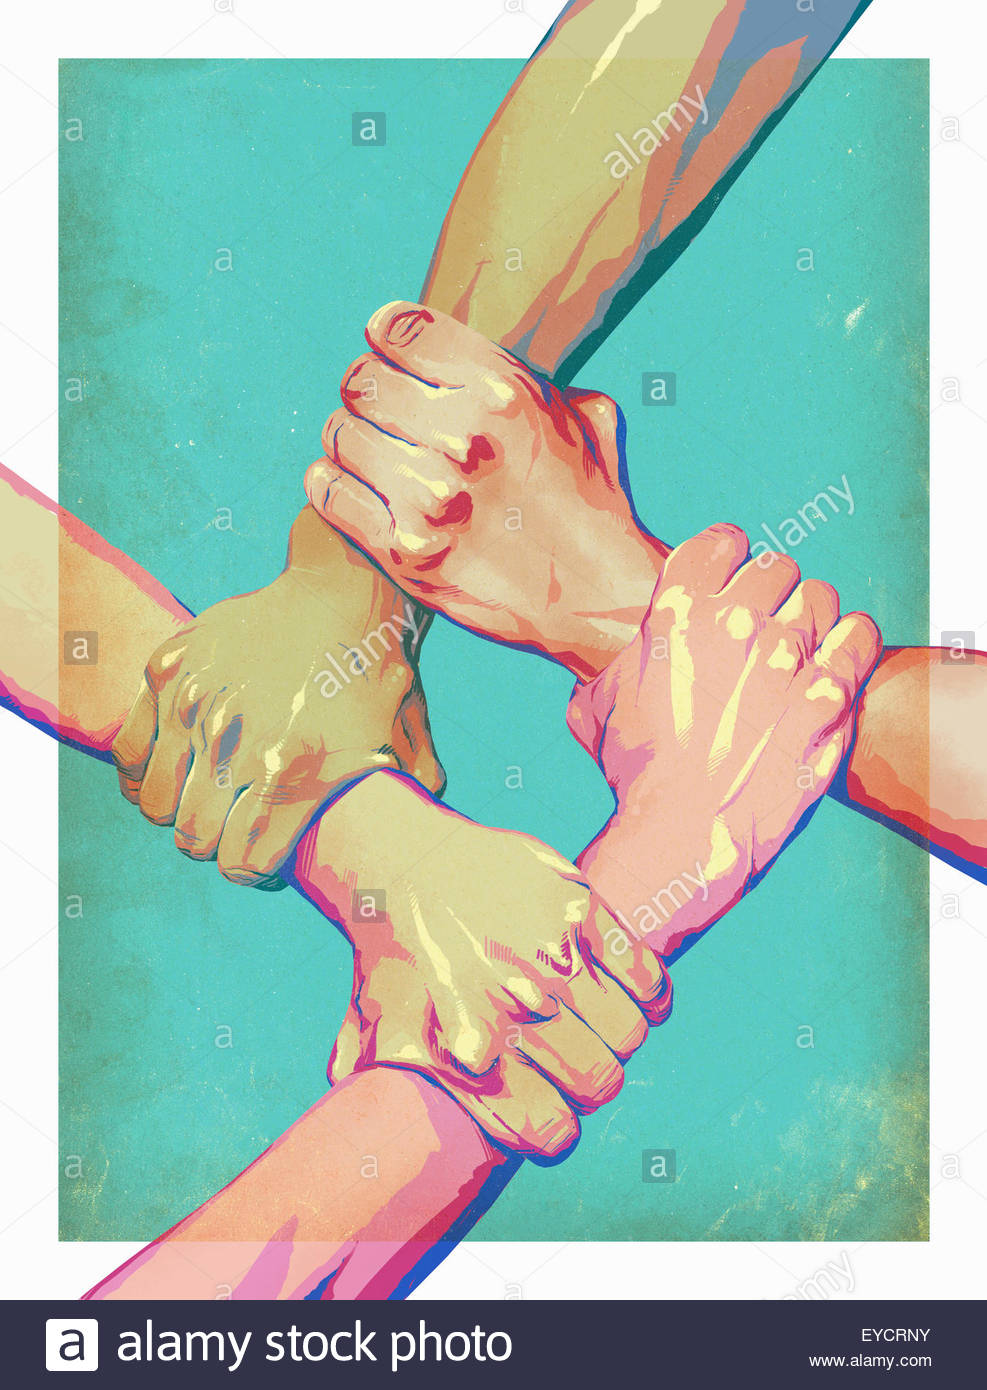 Four arms interlocked in unity - Stock Image